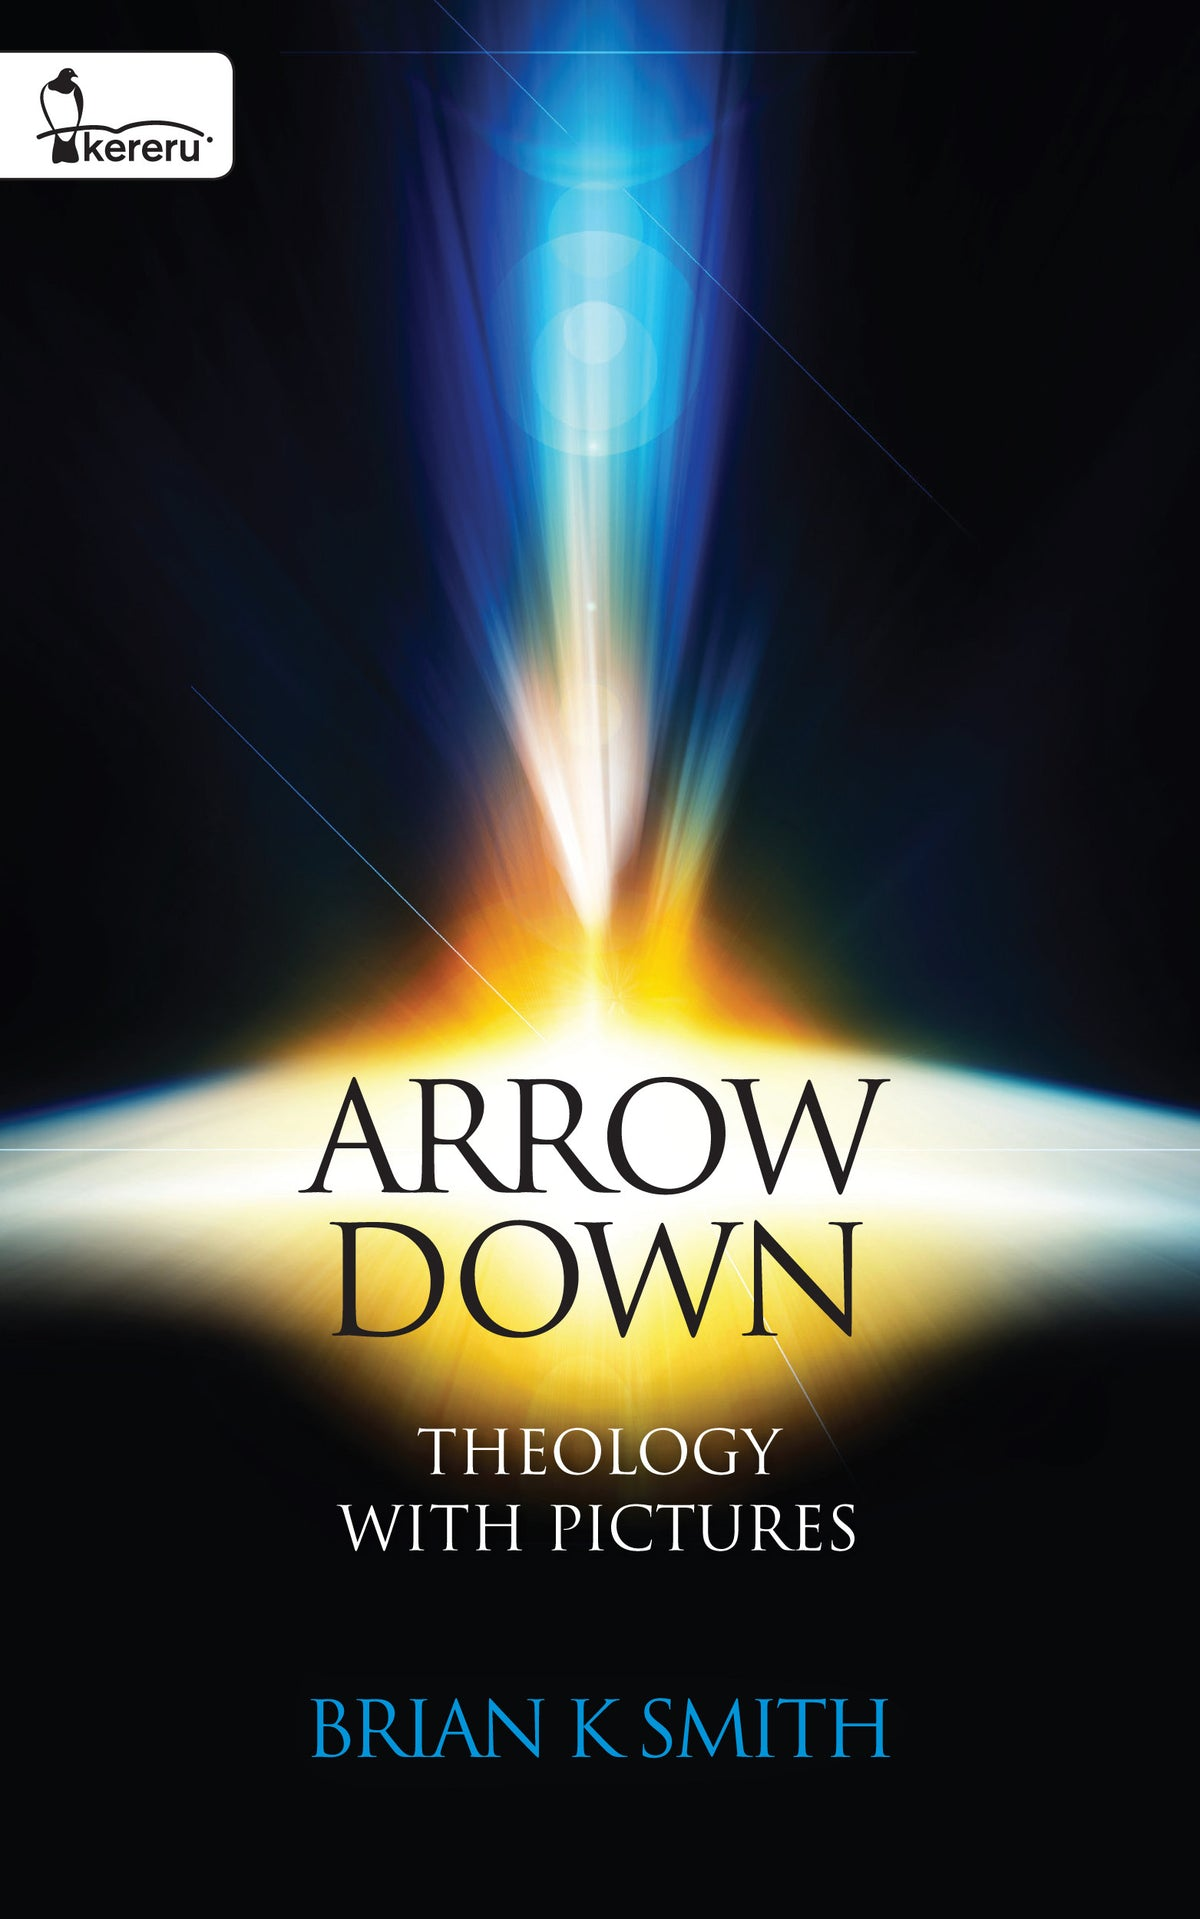 Arrow Down